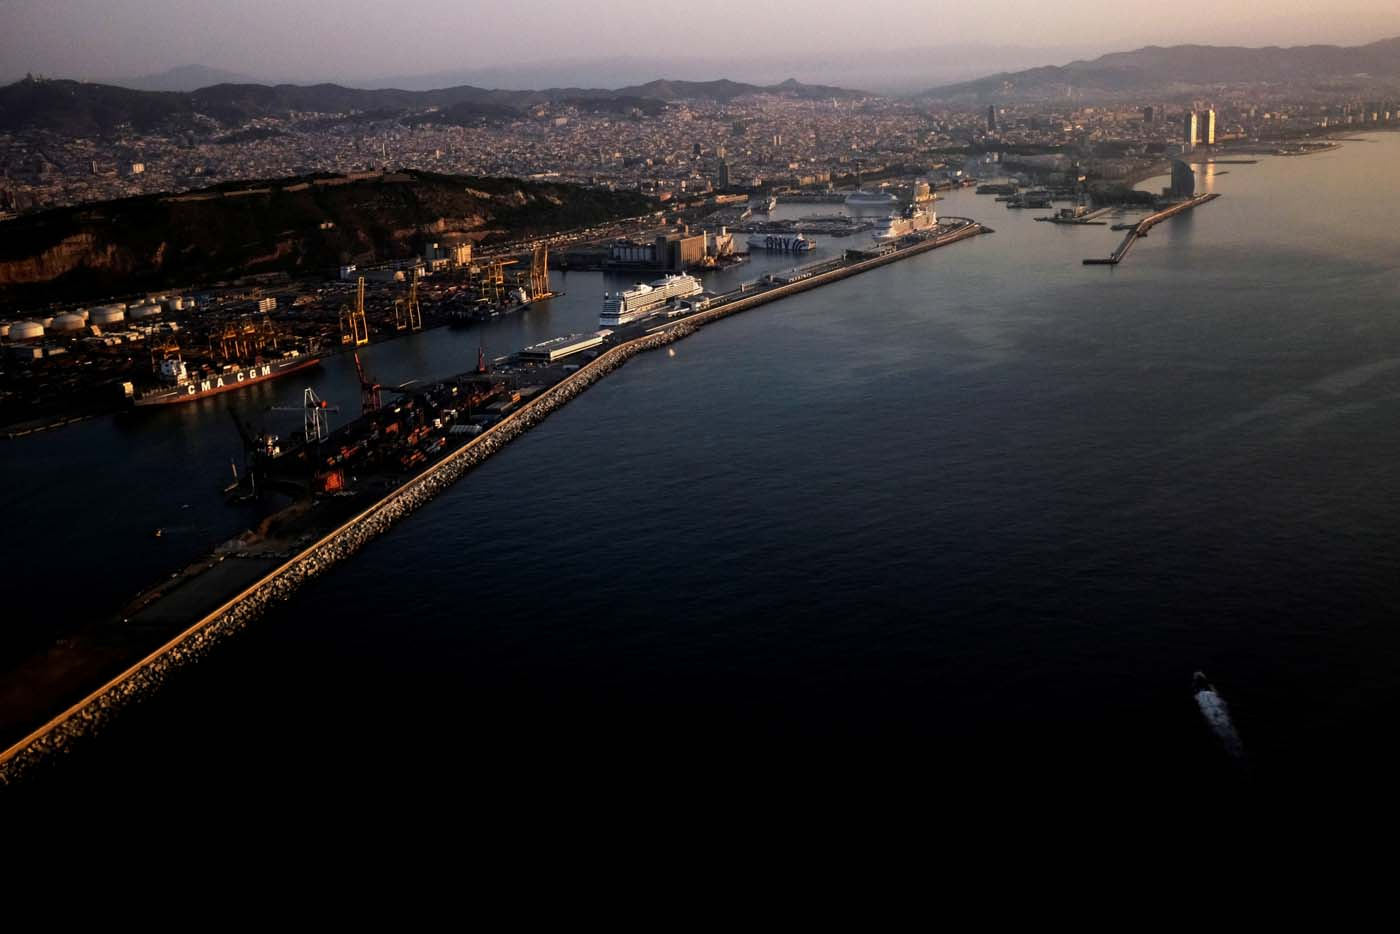 The coast of Barcelona is seen at sunrise the morning after Islamic State claimed responsibility for a vehicle attack on the city's Las Ramblas street in Barcelona, Spain August 18, 2017. REUTERS/James Lawler Duggan